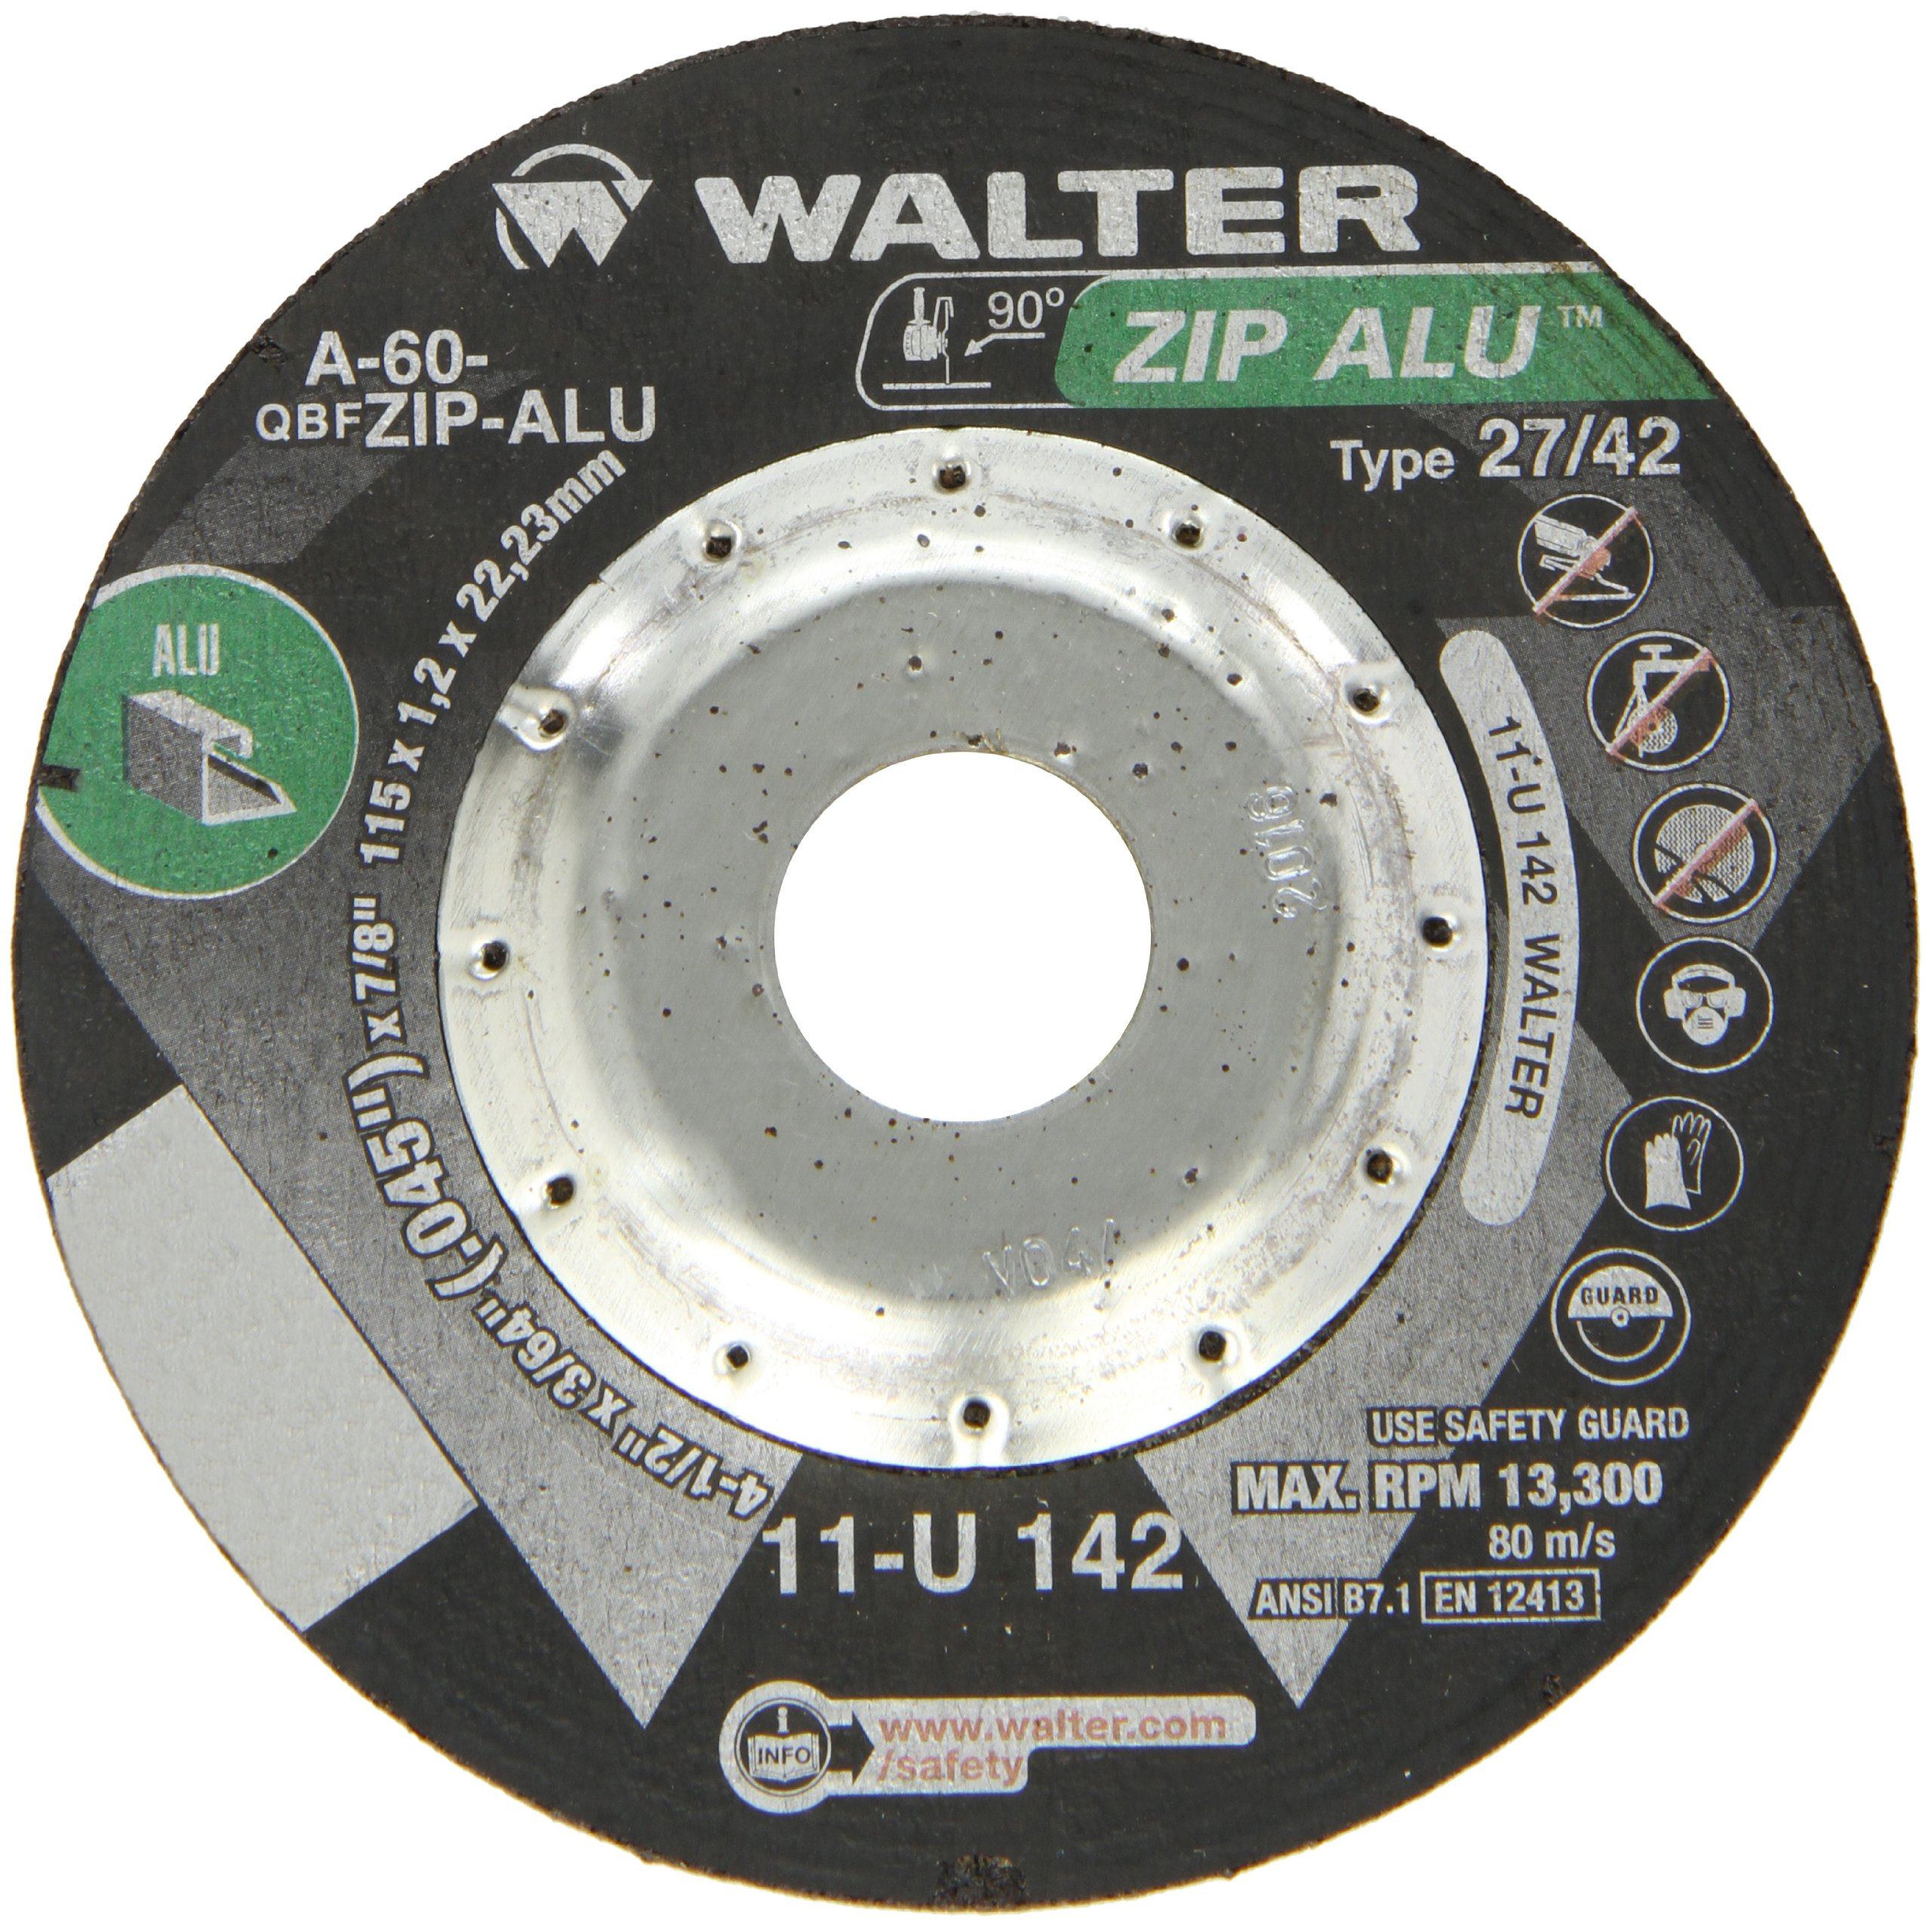 Walter ZIP Alu Fast and Free Cutoff Wheel, Type 27, Round Hole, Aluminum Oxide, 4-1/2'' Diameter, 3/64'' Thick, 7/8'' Arbor, Grit A-60-ZIP-ALU (Pack of 25)